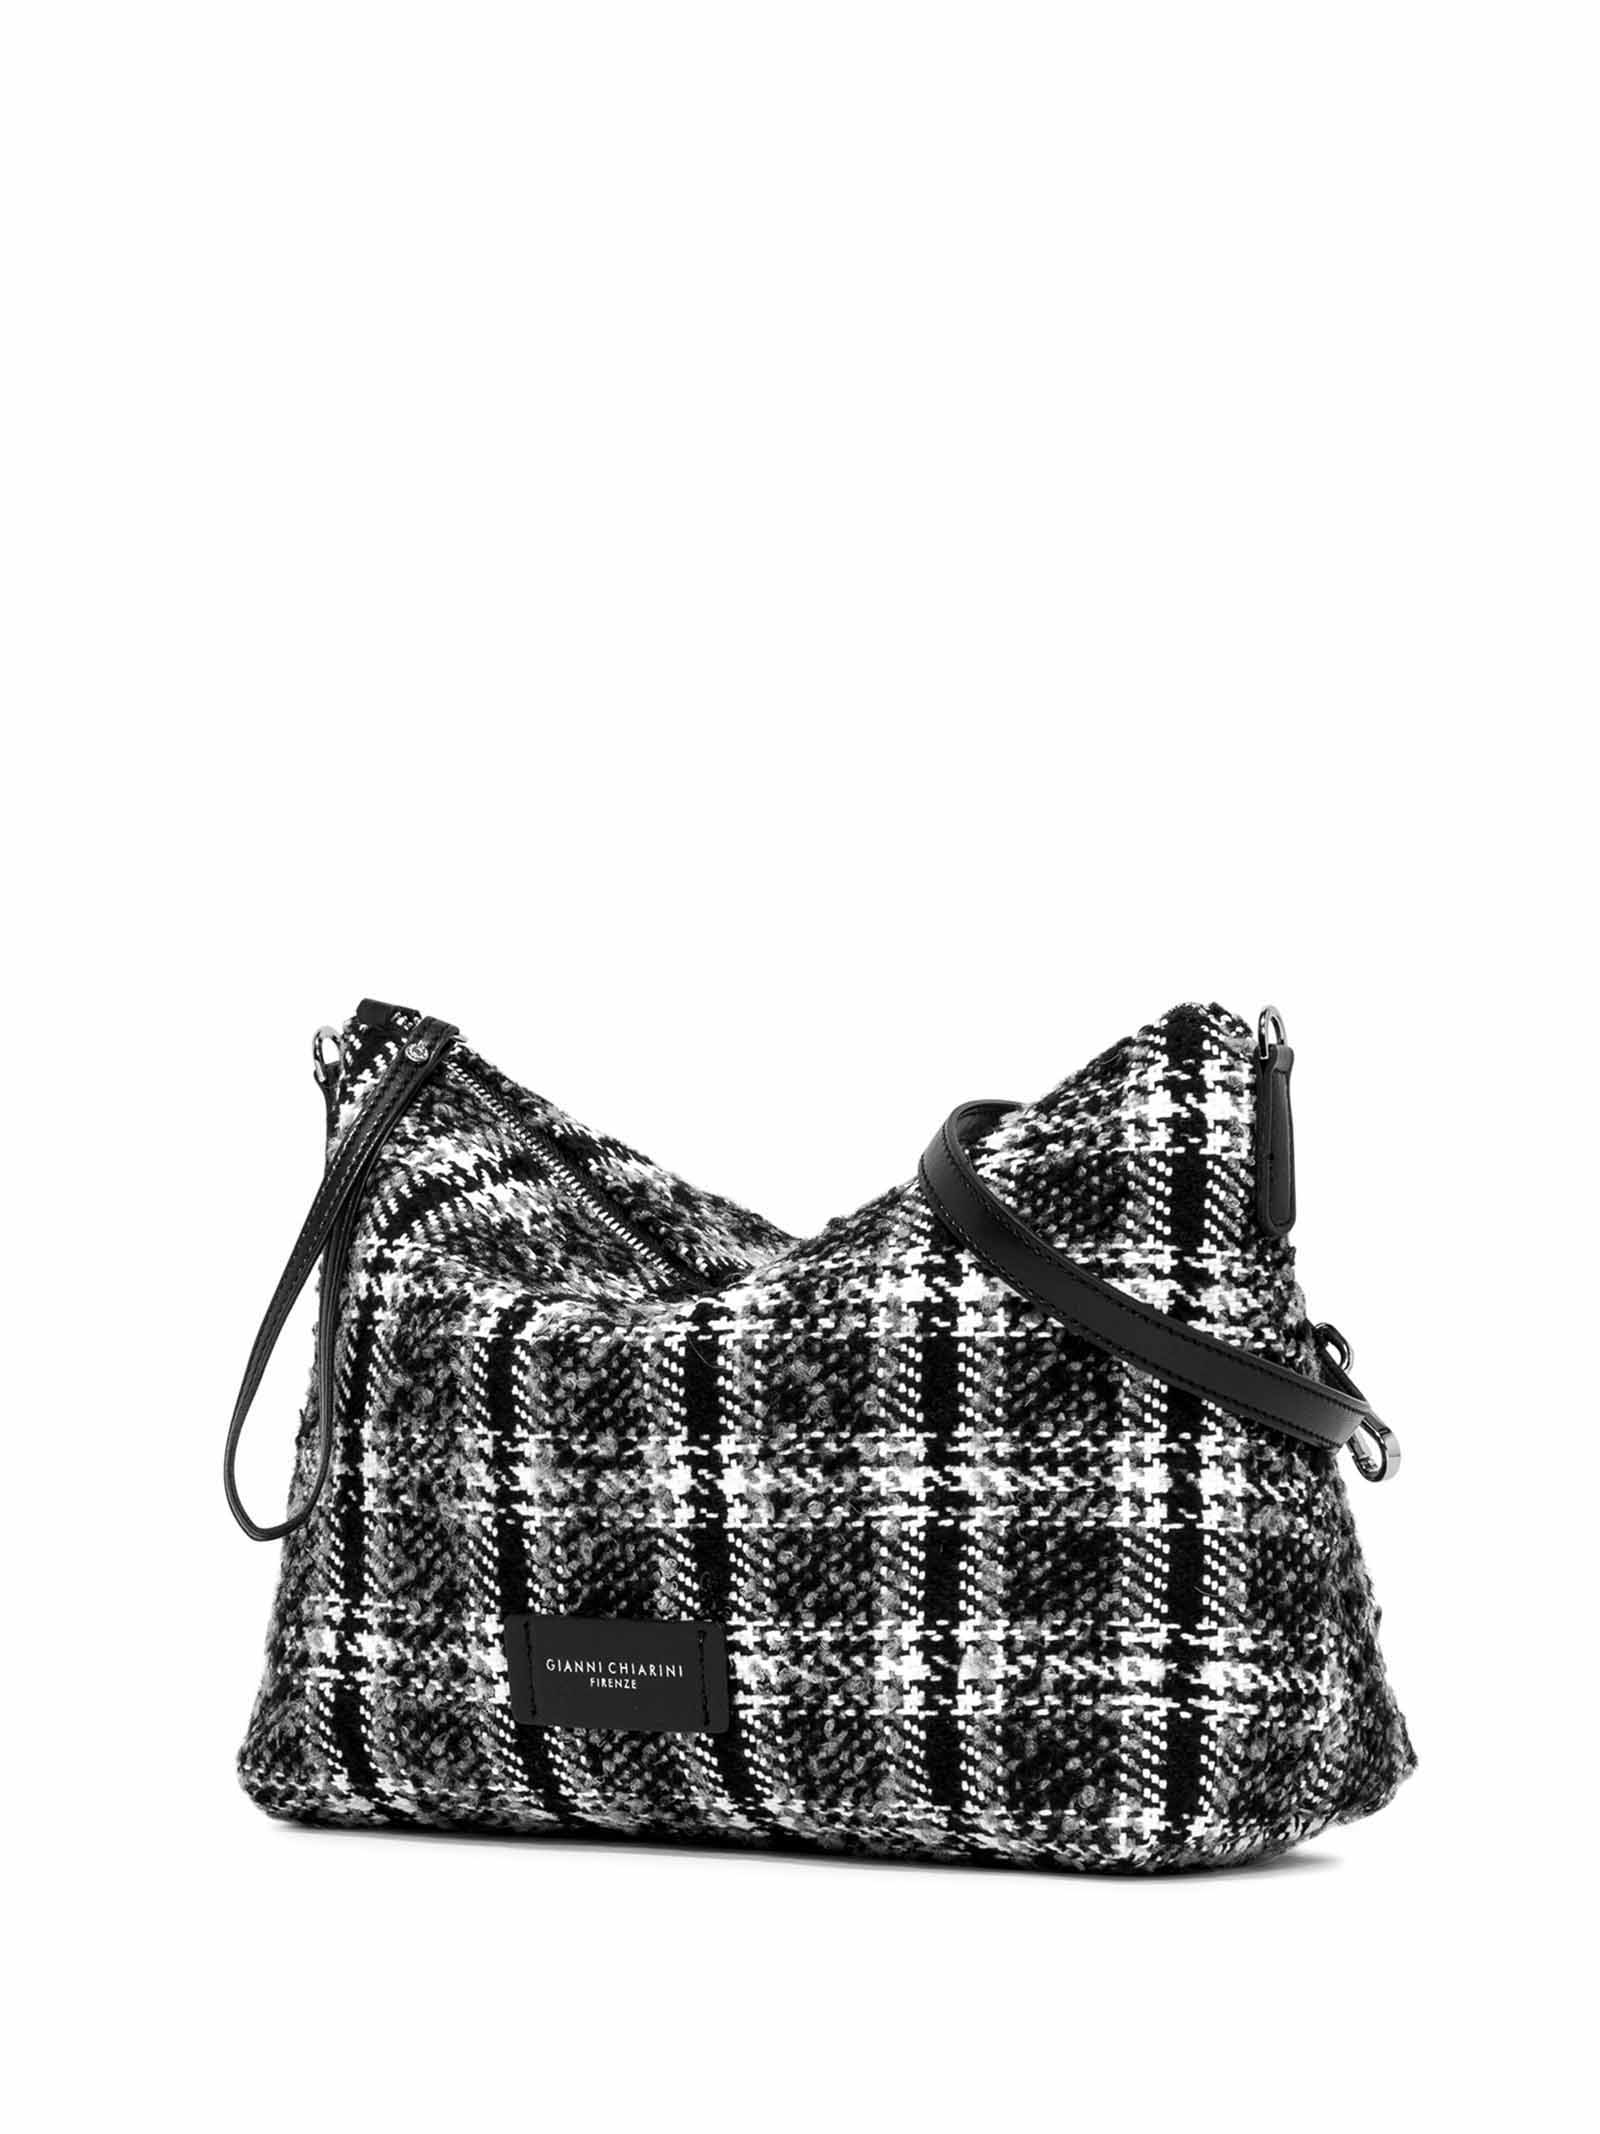 Women's Accessories Empty Bag in White and Black Fabric with Leather Shoulder Strap and Bracelet Gianni Chiarini   Bags and backpacks   SB9391041